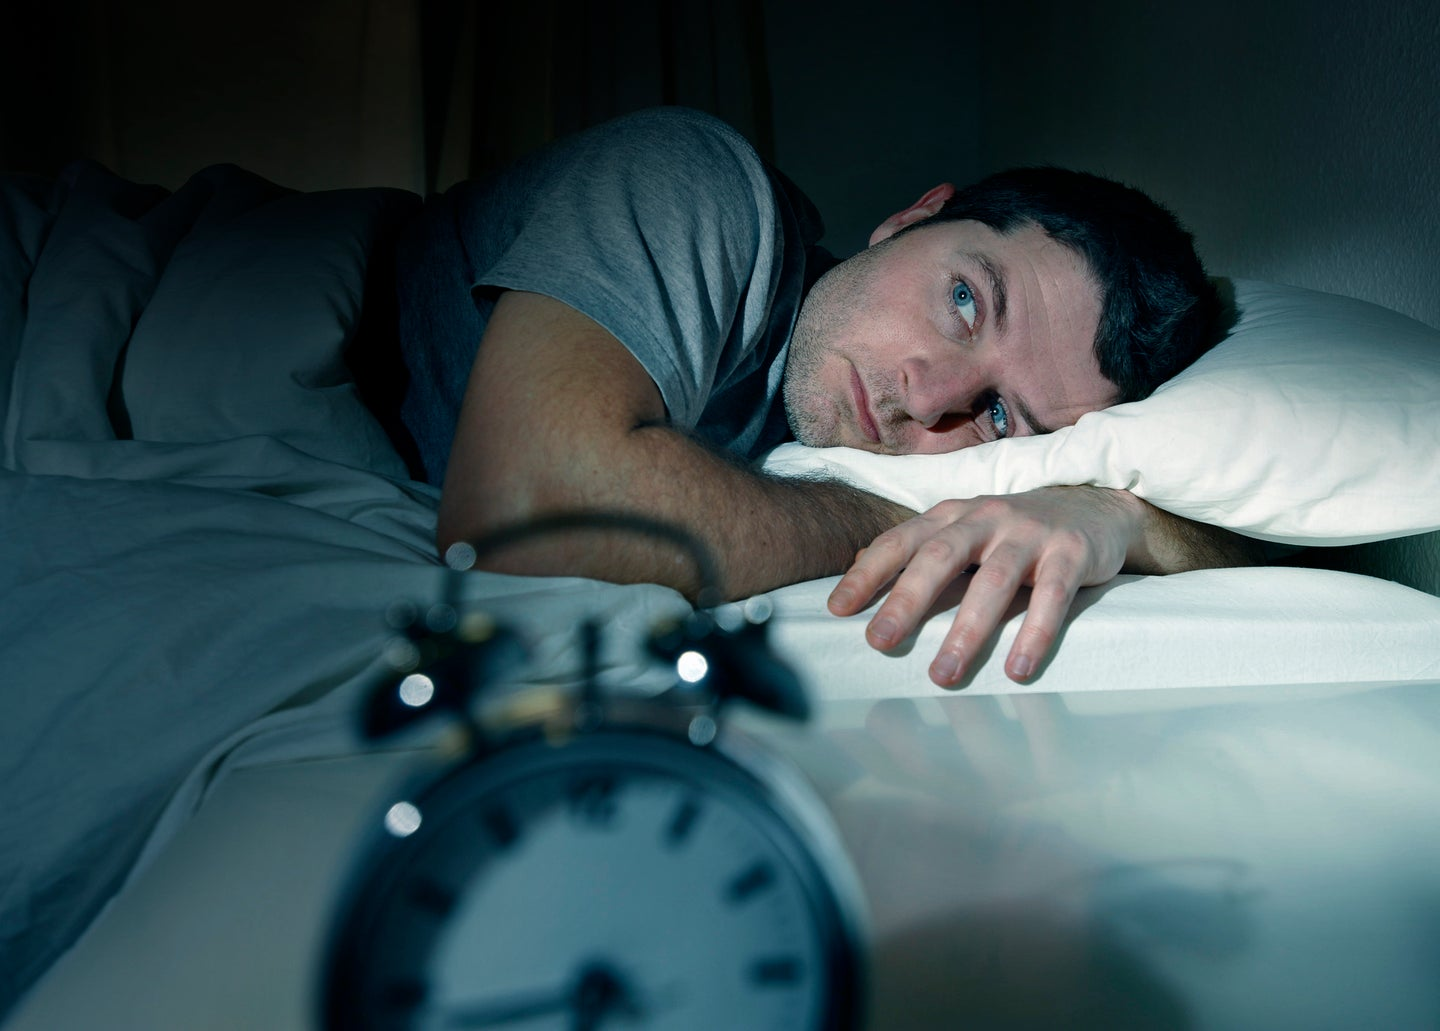 The wrong kind of sleep could keep you dwelling on bad memories